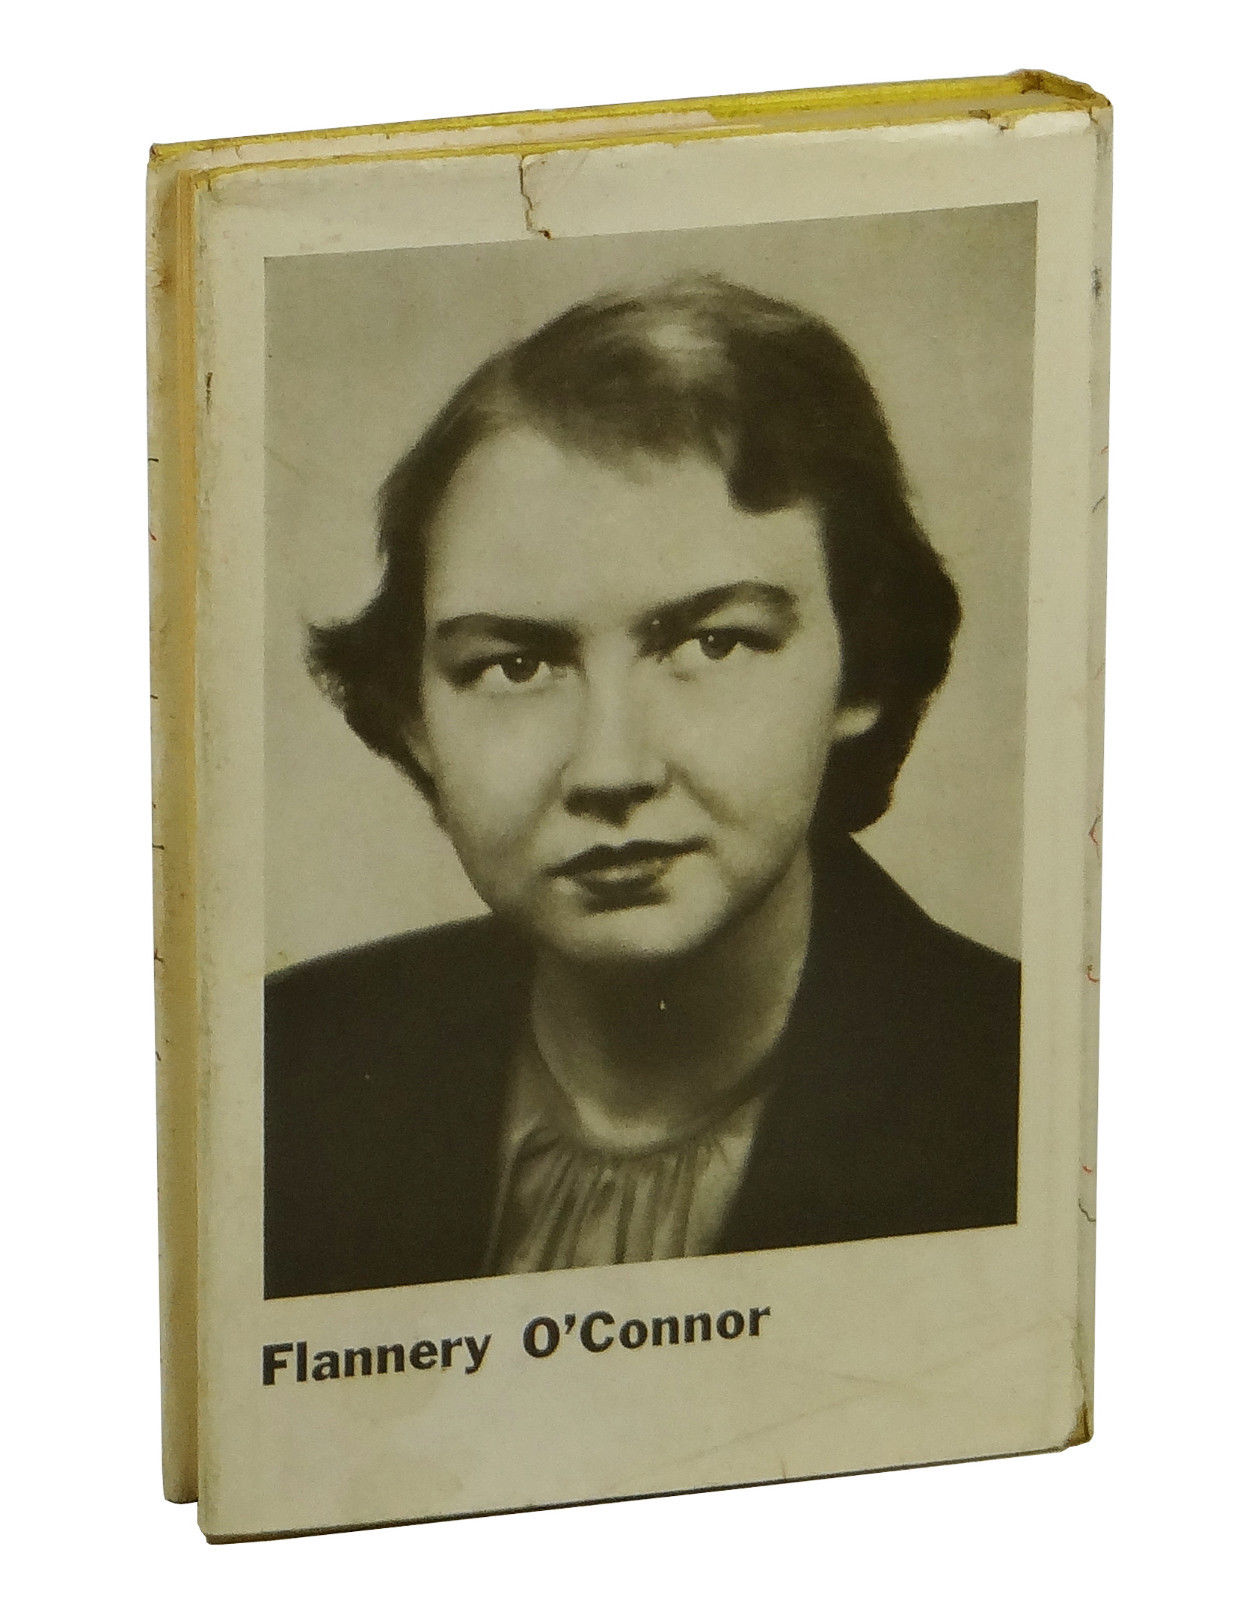 flannery o connor essays flannery sean davis flannery o connor essay narrative essay yamwl flannery sean davis flannery o connor essay narrative essay yamwl